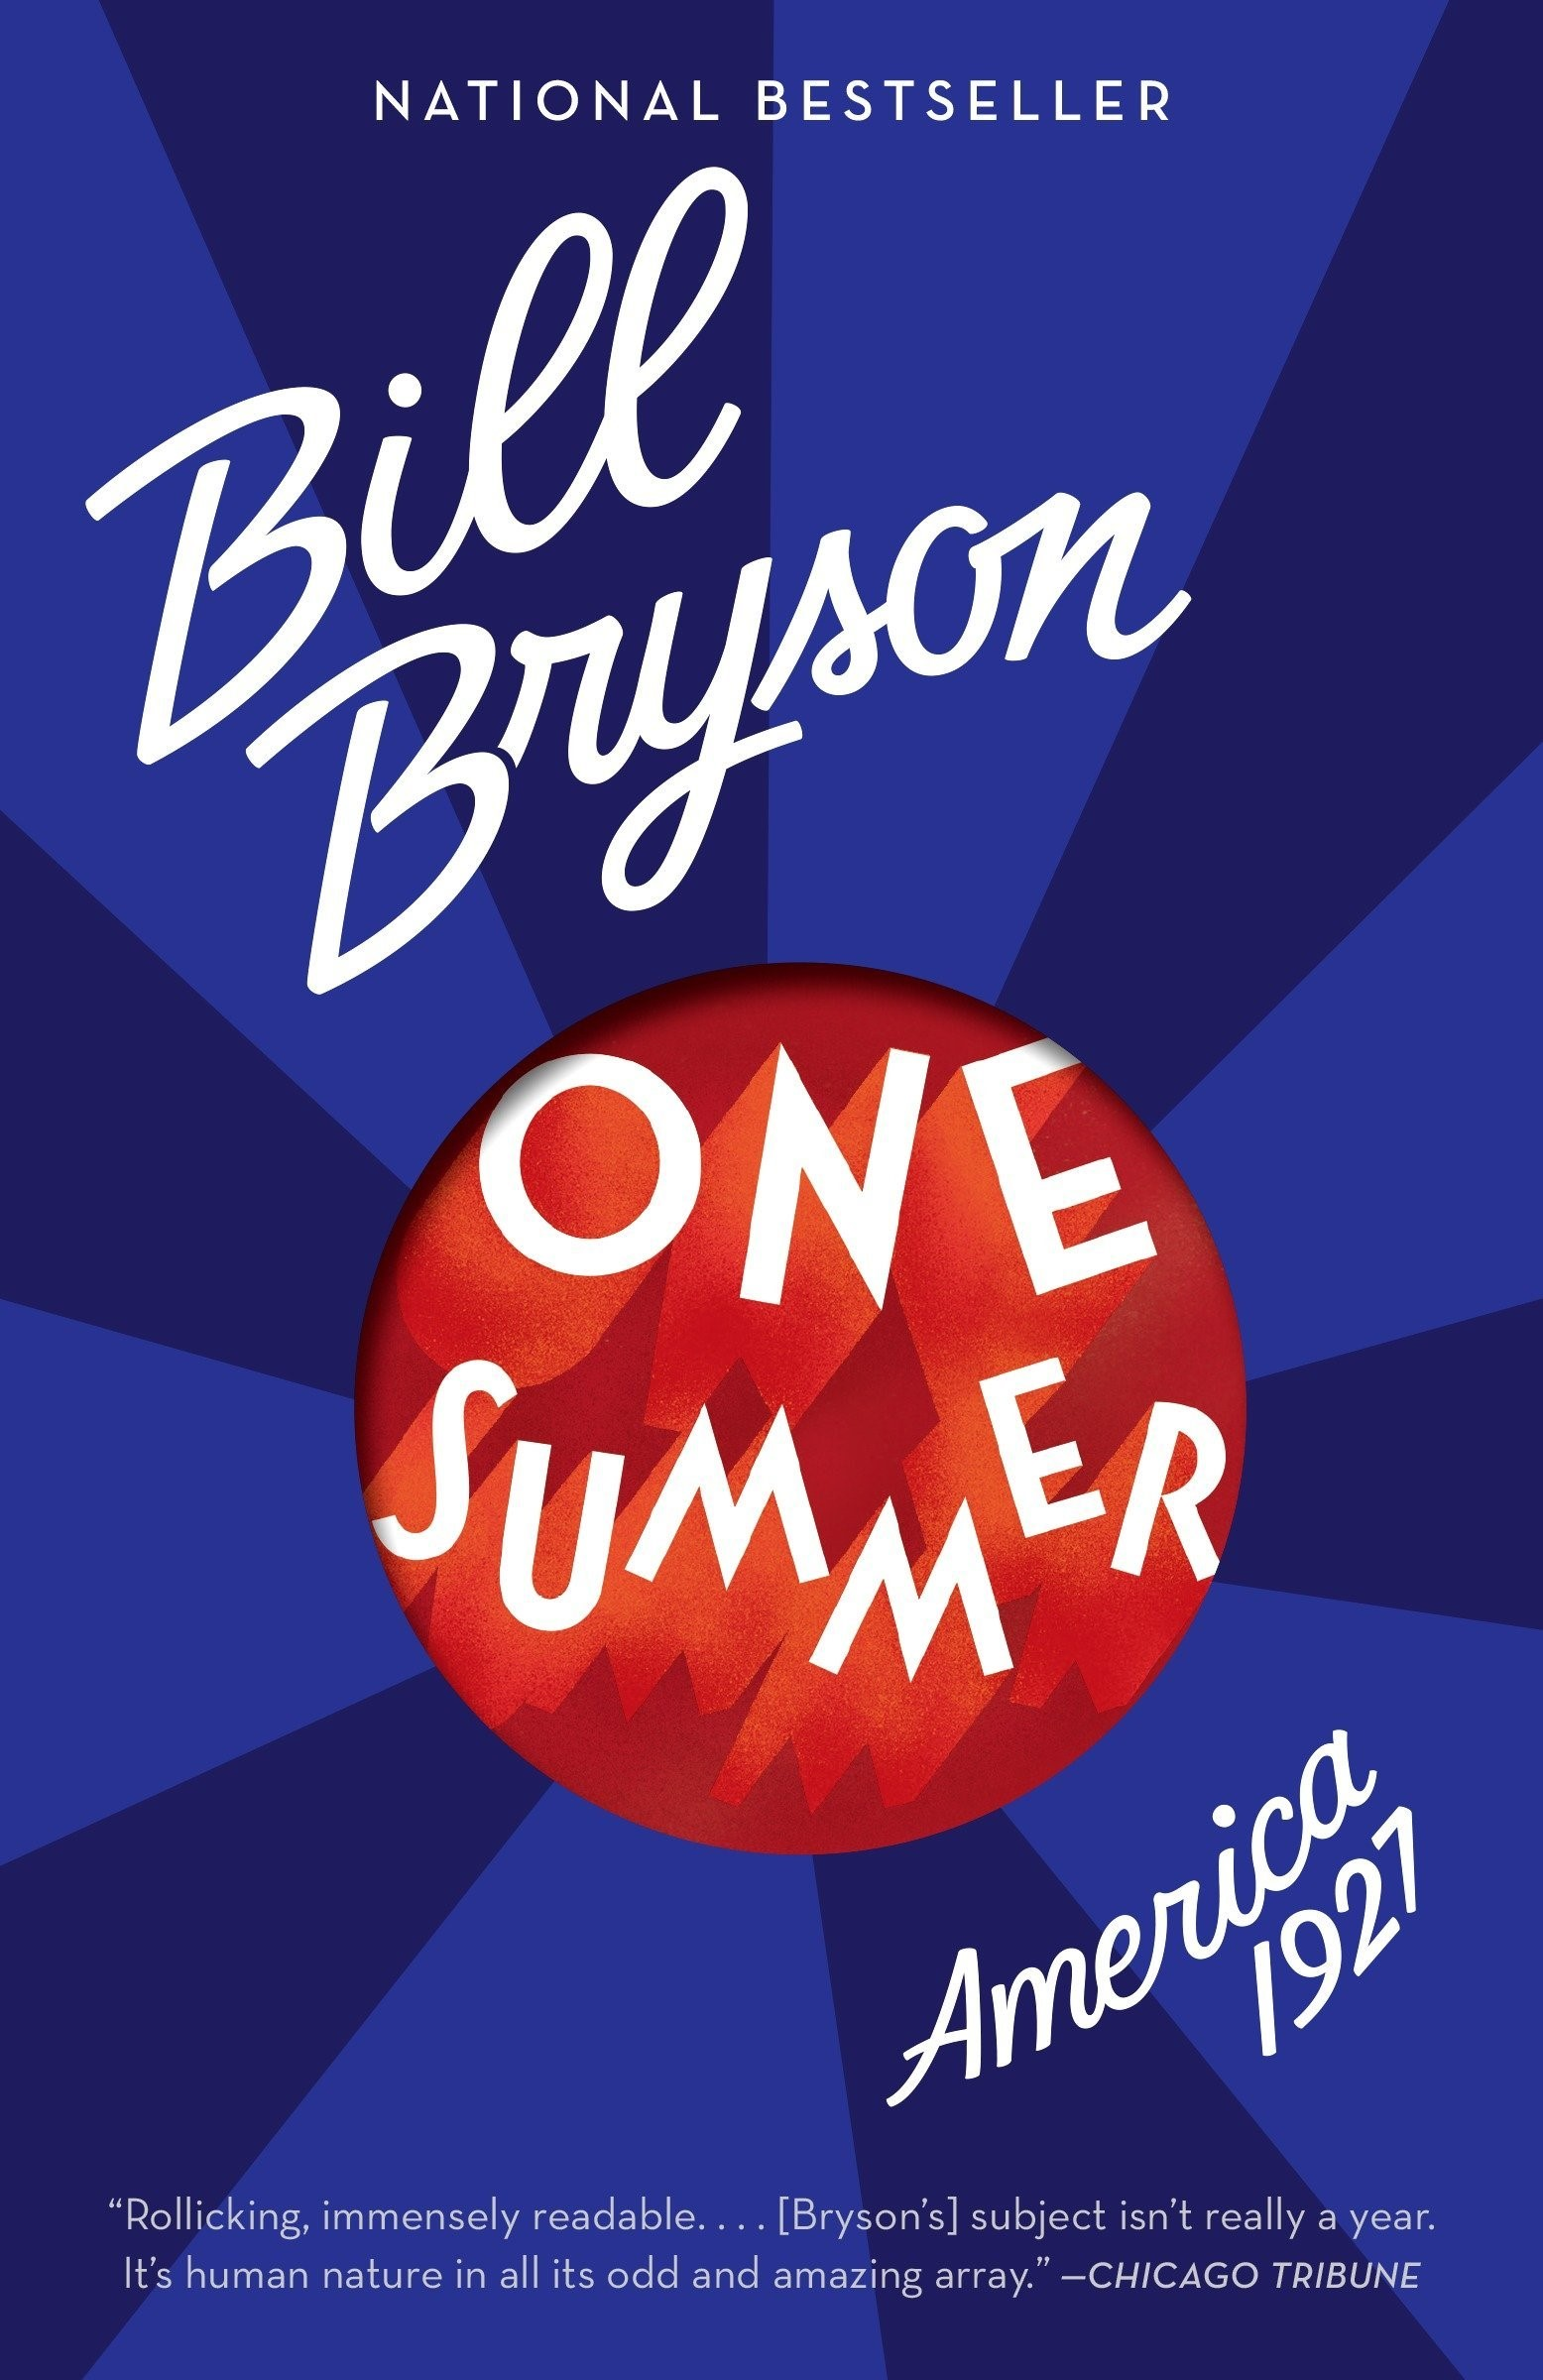 History Book Club cover - One Summer, Bryson